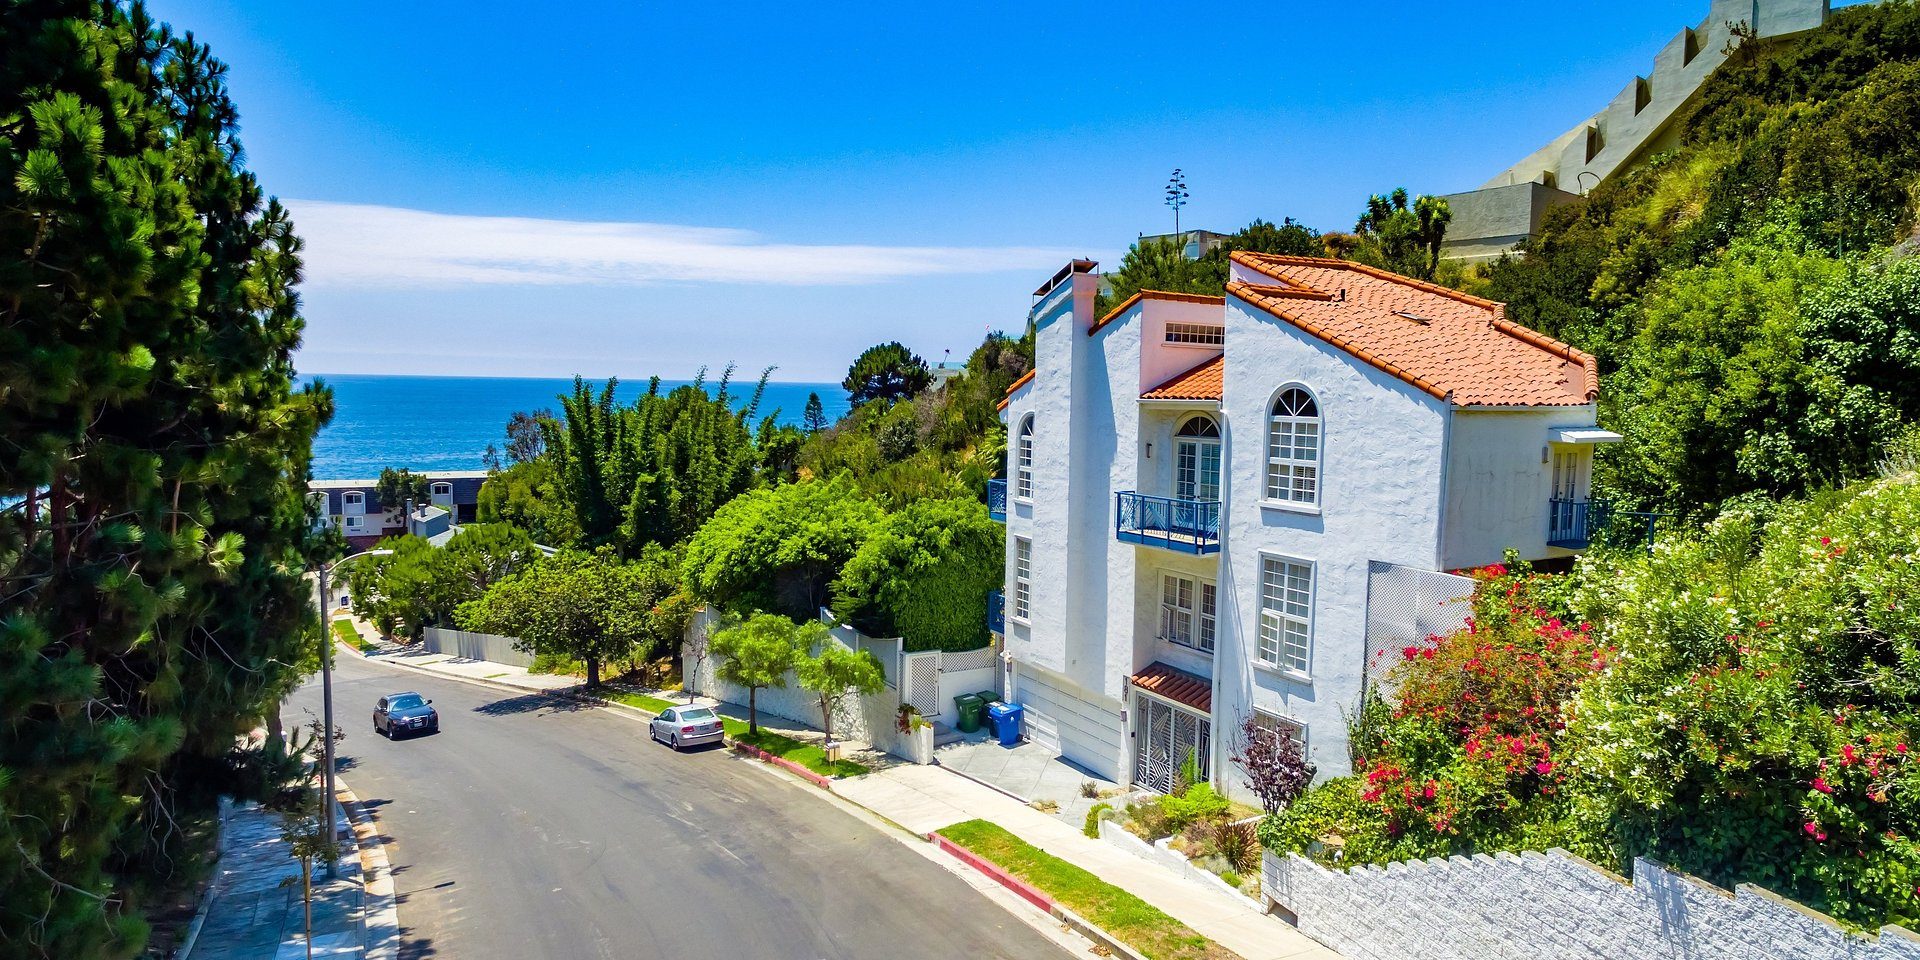 Coldwell Banker Realty Lists a Pacific Palisades Property for $5.5 Million